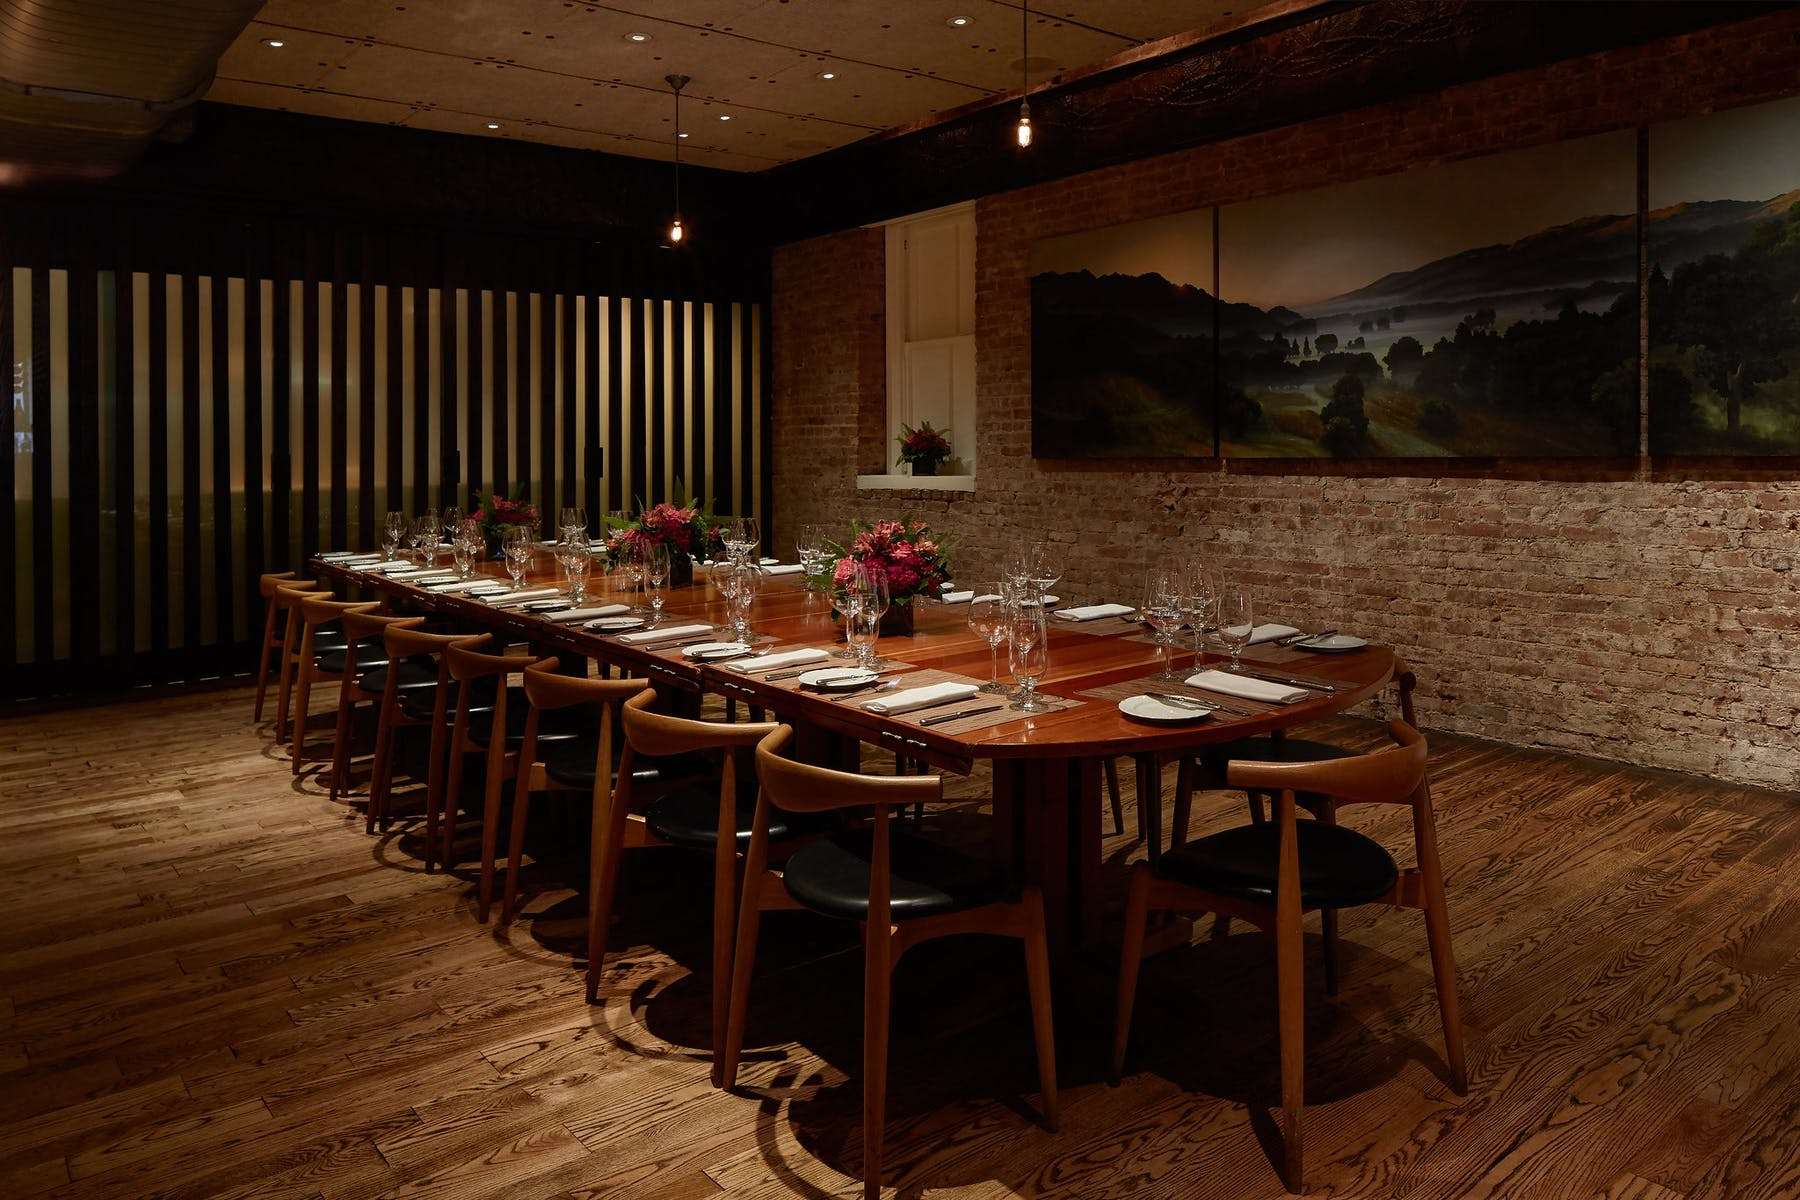 enorme korting fabriek Koop Authentiek CRAFT | The Best Private Dining in NYC | Known Among the ...